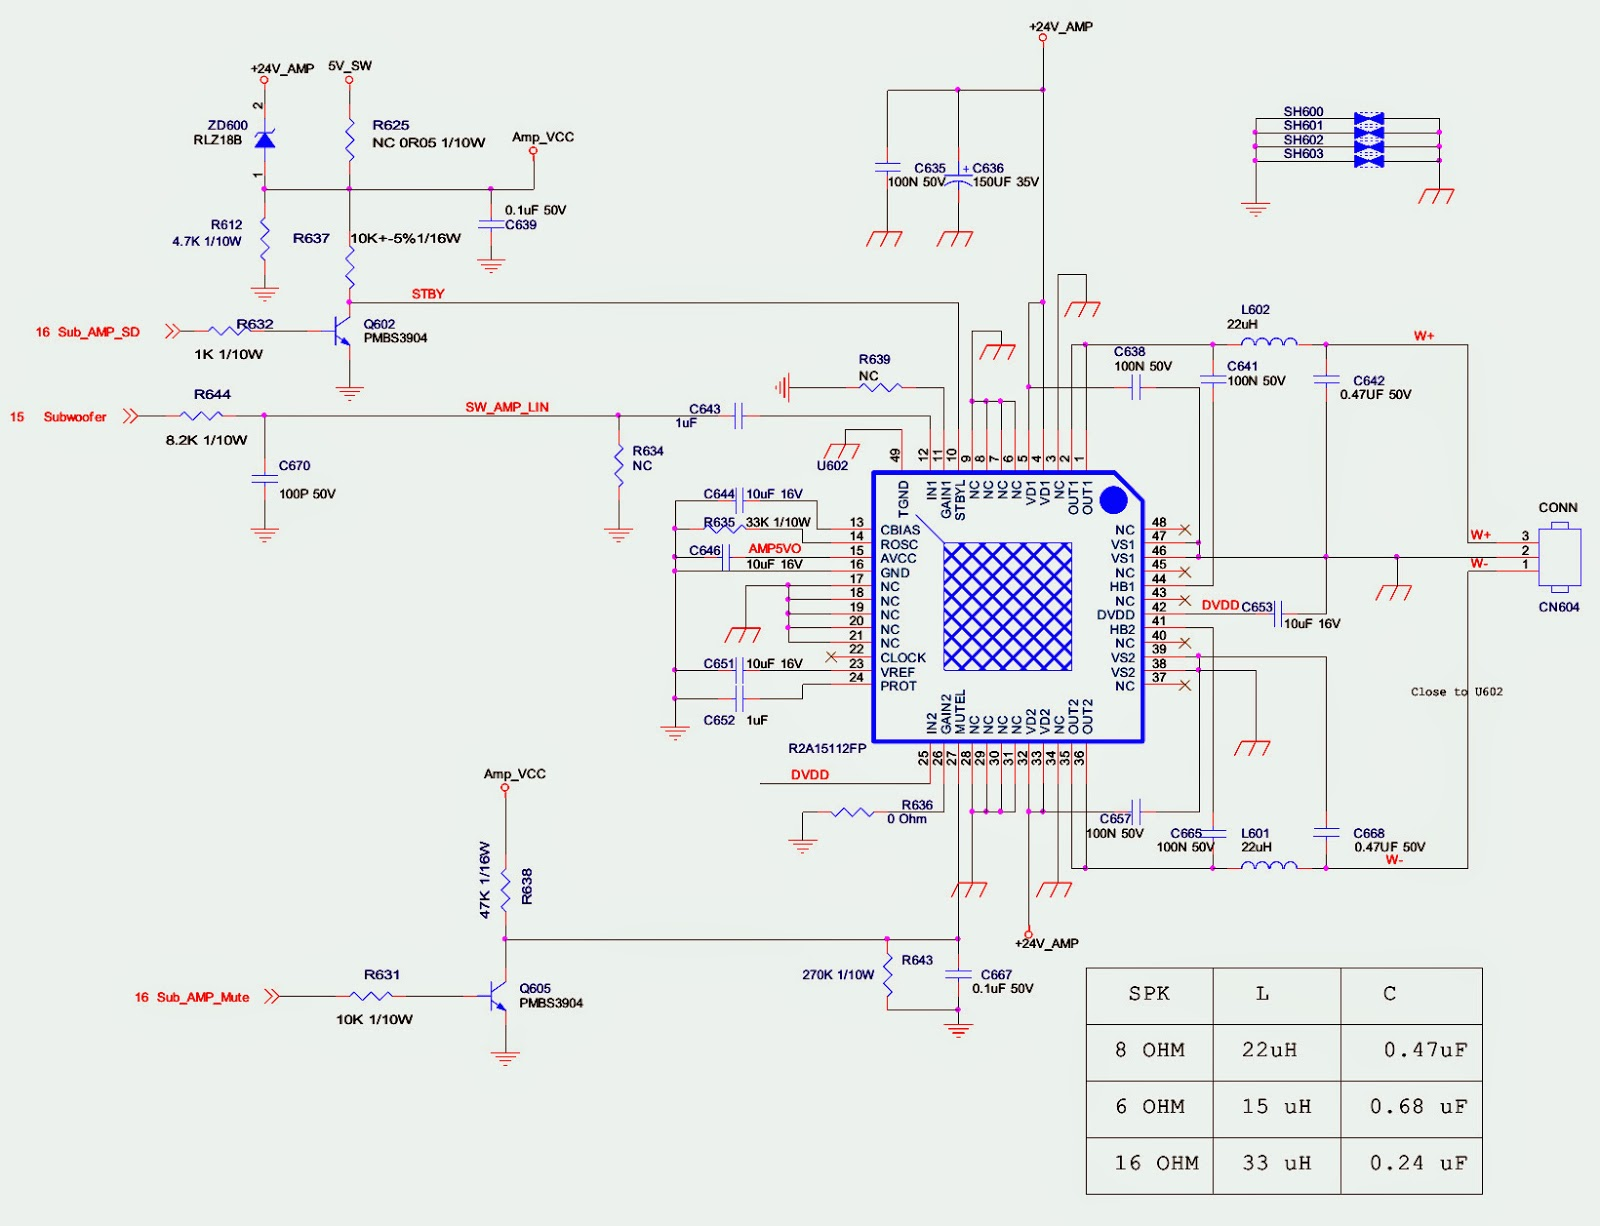 Photodioda Dioda Foto besides Tnpa5364bj Smps Schematic Panasonic Th likewise Toshiba 32hl95 Lcd Tv Power Supply Smps likewise Lg 47lg90 Led Lcd Tv Tcon Board Voltage further Tba120 Demodulator. on tv power schematic